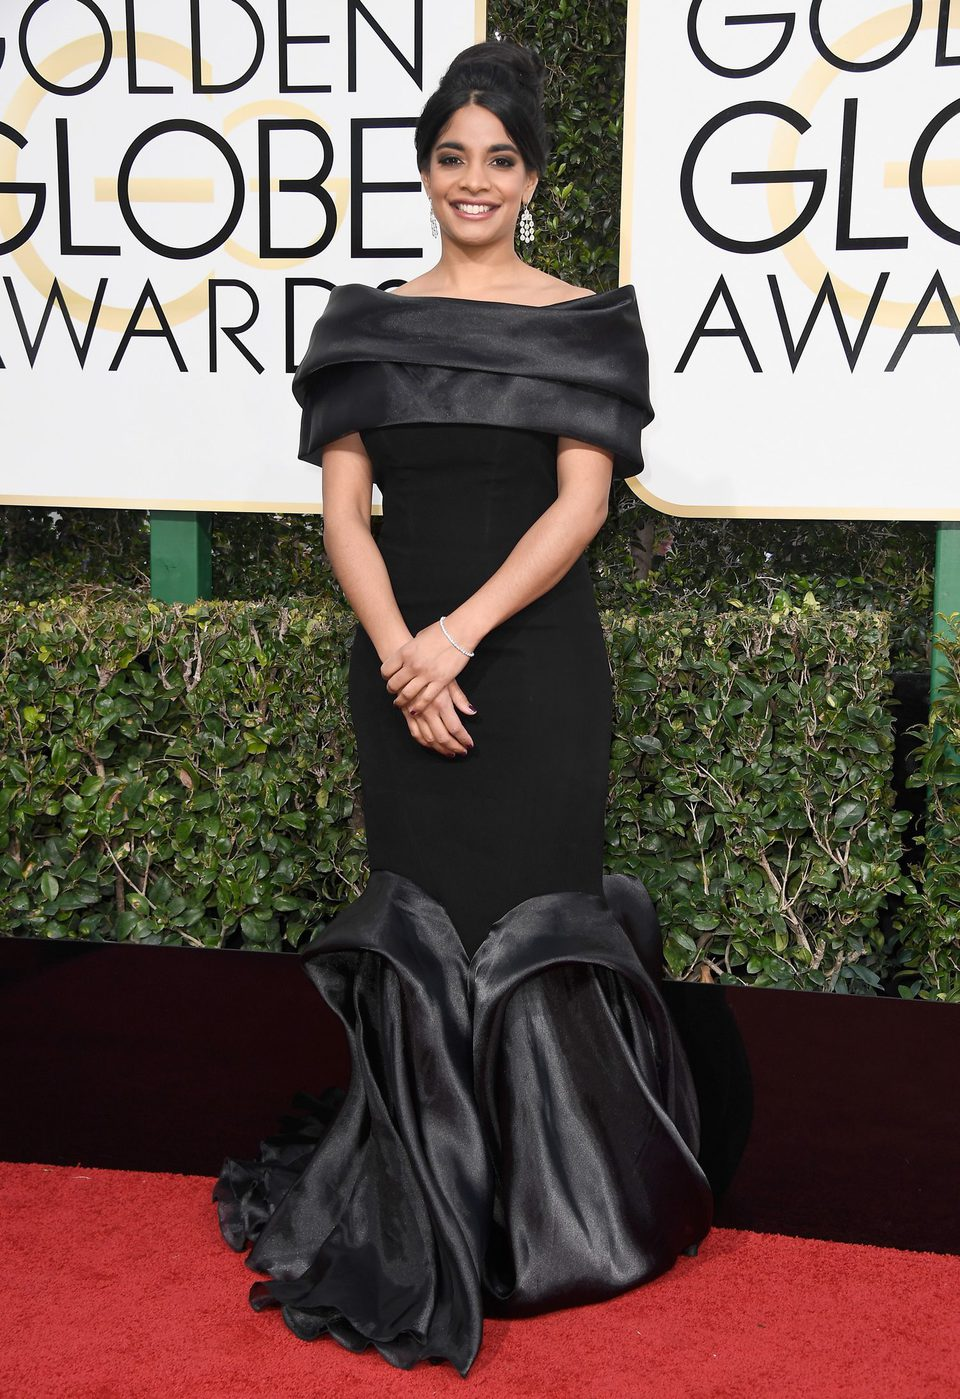 Amara Karan at Golden Globes 2017 red carpet